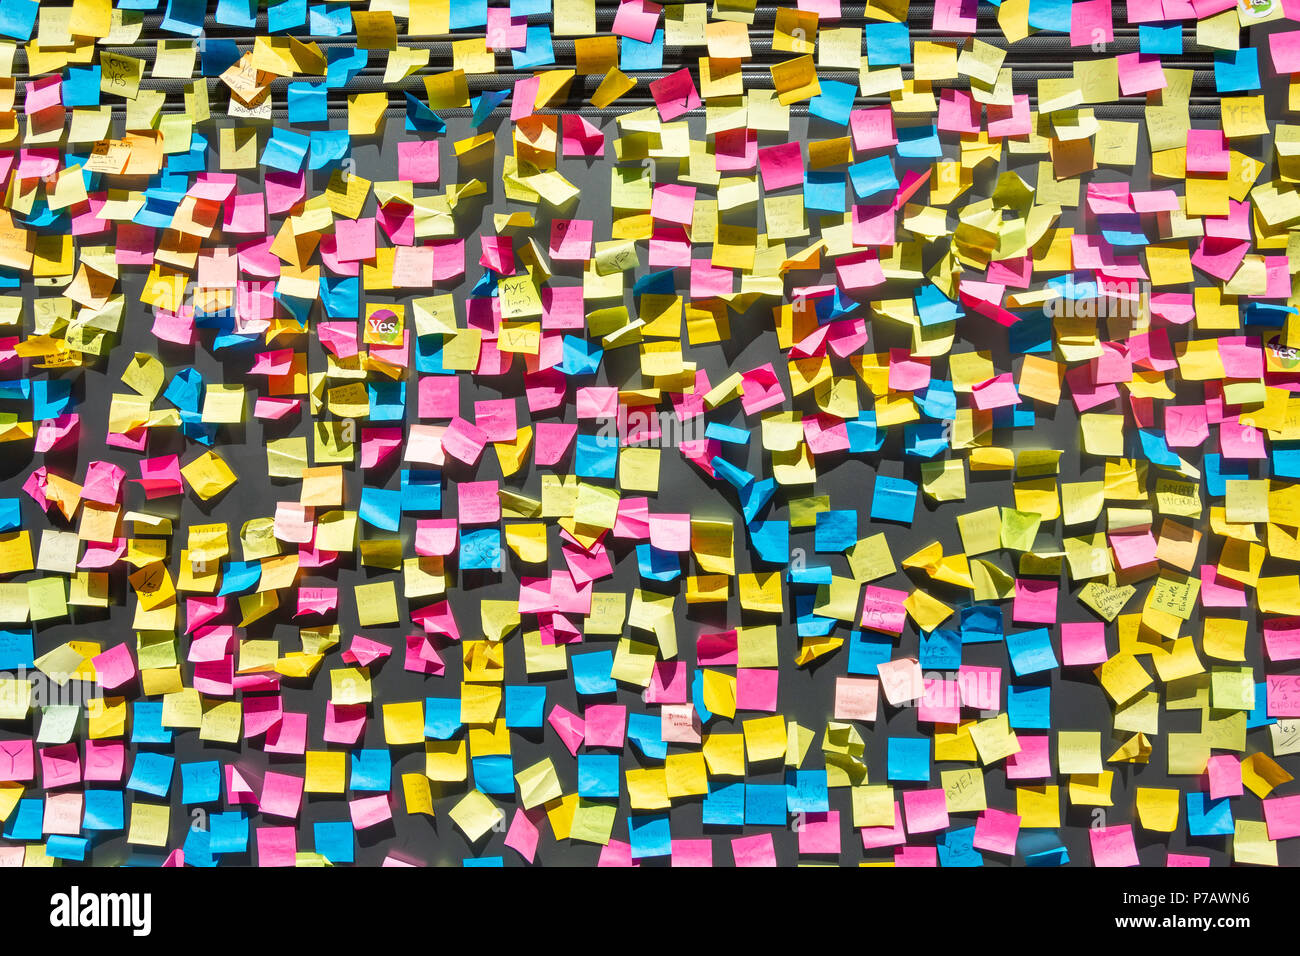 Wall covered in post-it notes (abortion referendum support), Temple Bar, Dublin, Leinster Province, Republic of Ireland - Stock Image